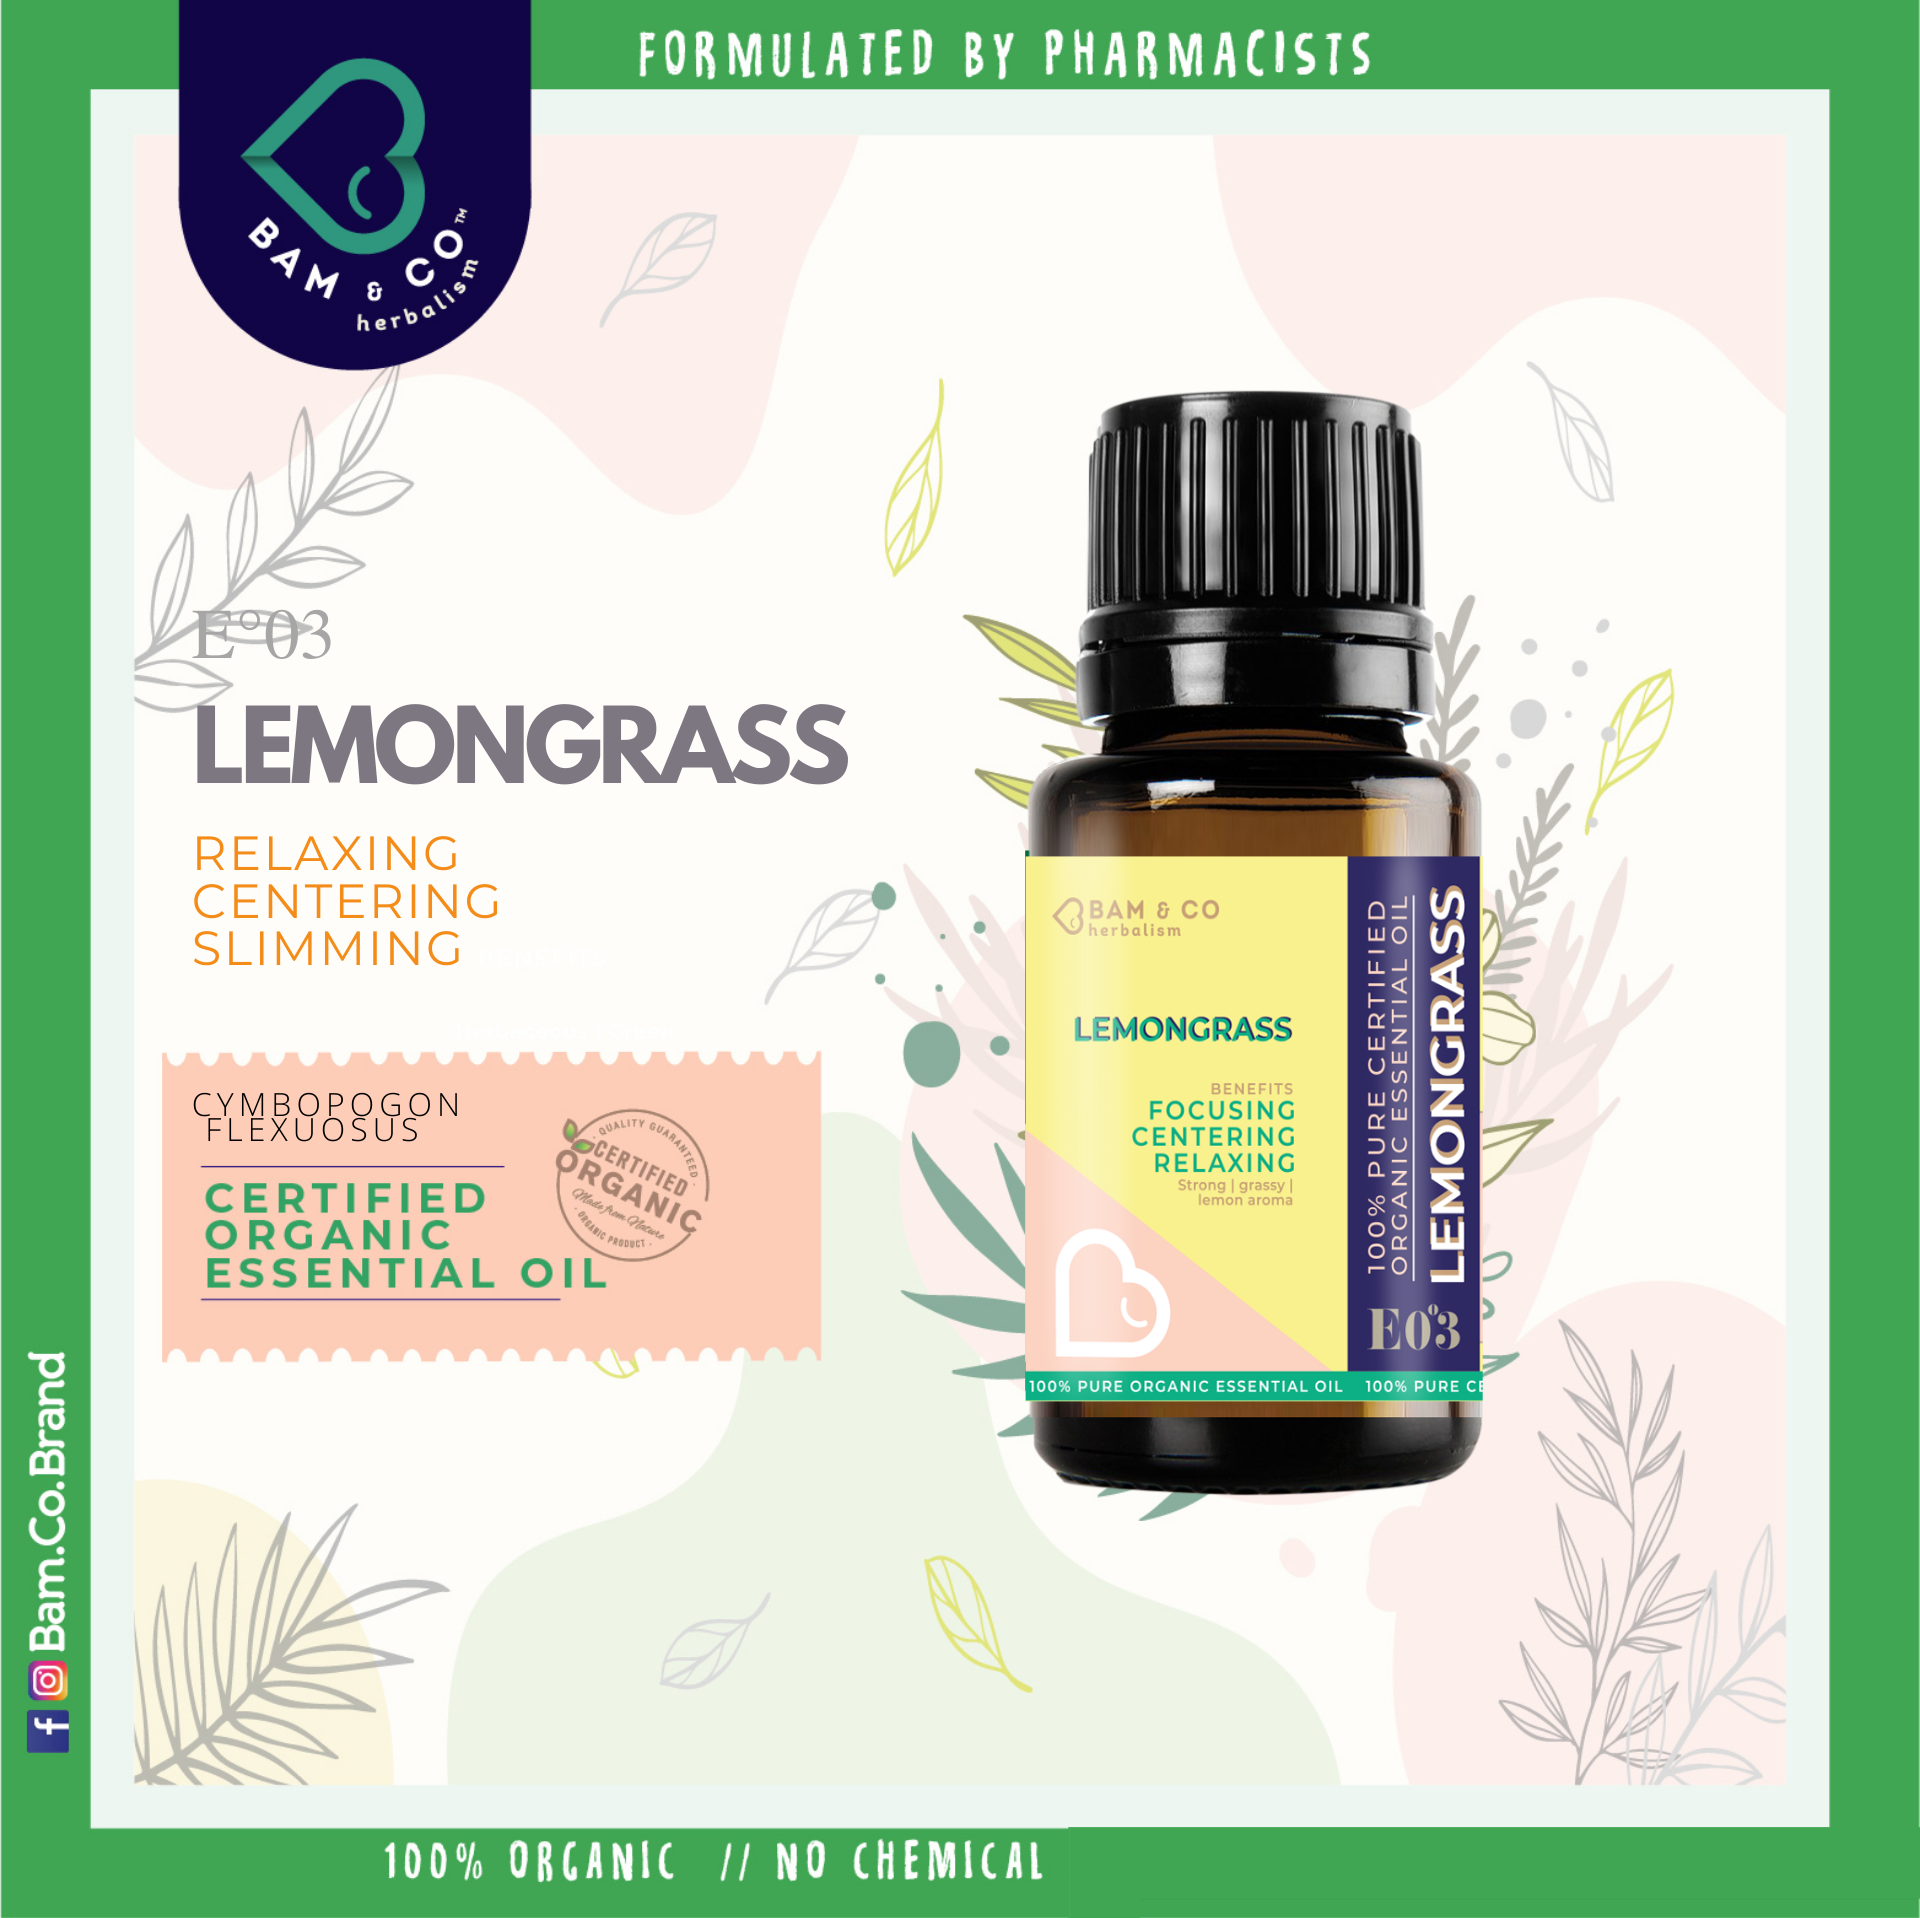 BAM & CO. LEMONGRASS CERTIFIED PURE ORGANIC ESSENTIAL OIL PERFECT FOR HUMIDIFIER 5ML 10ML AROMATHERAPHY